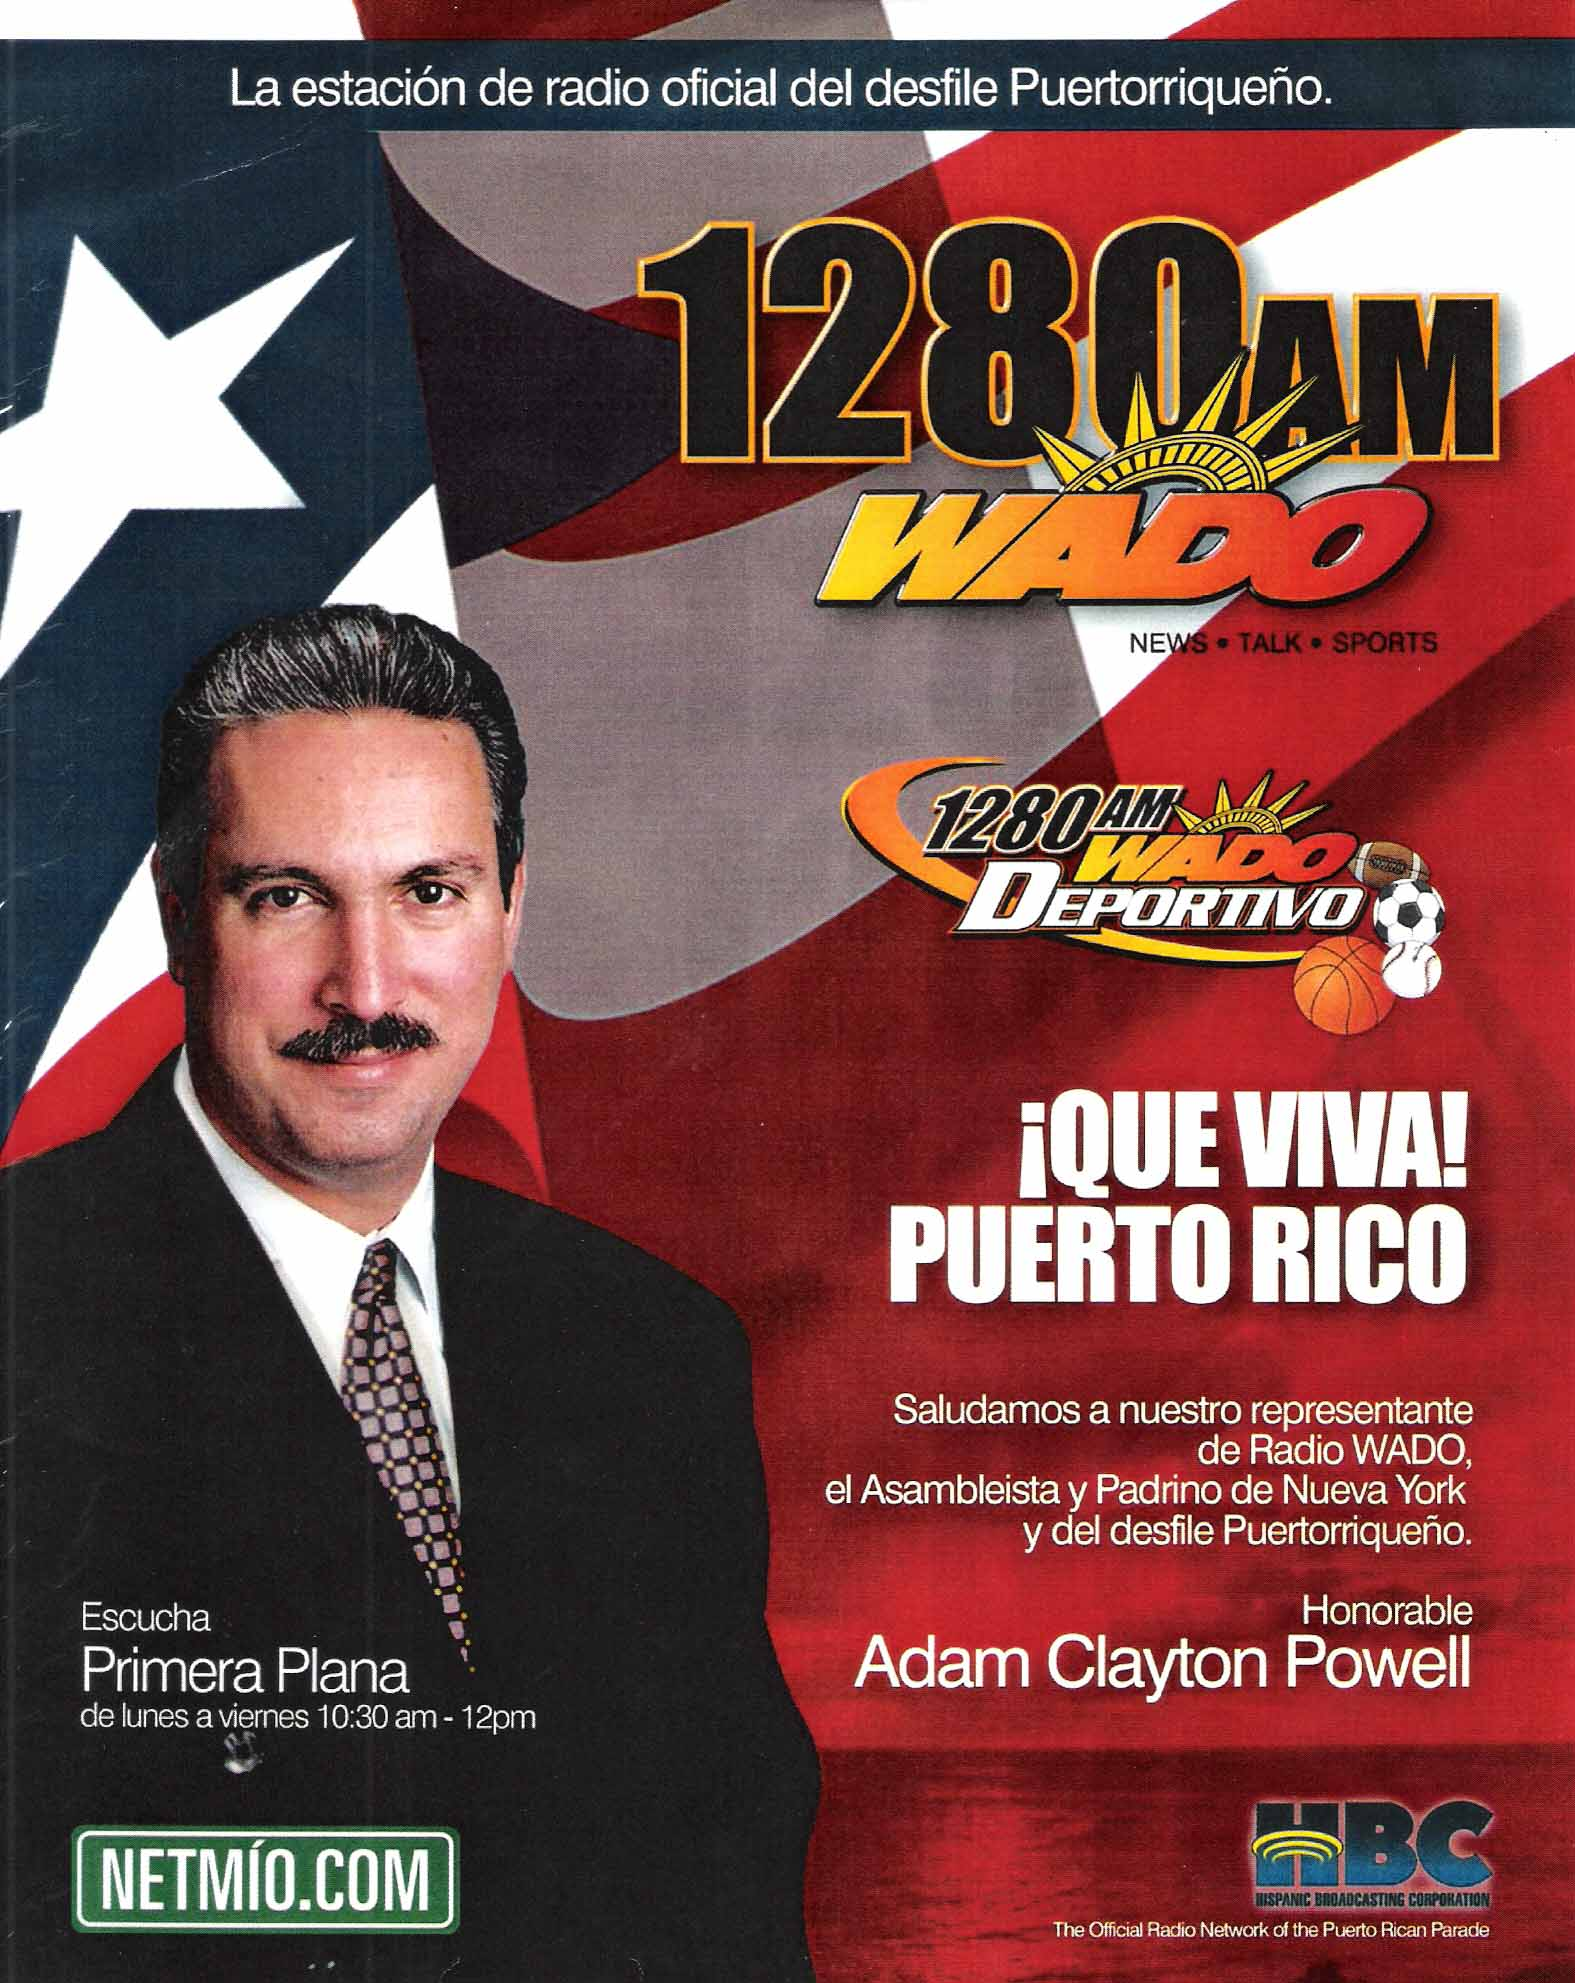 Adam was a host for Radio WADO 1280 AM and Godfather of the Puerto Rican Day Parade